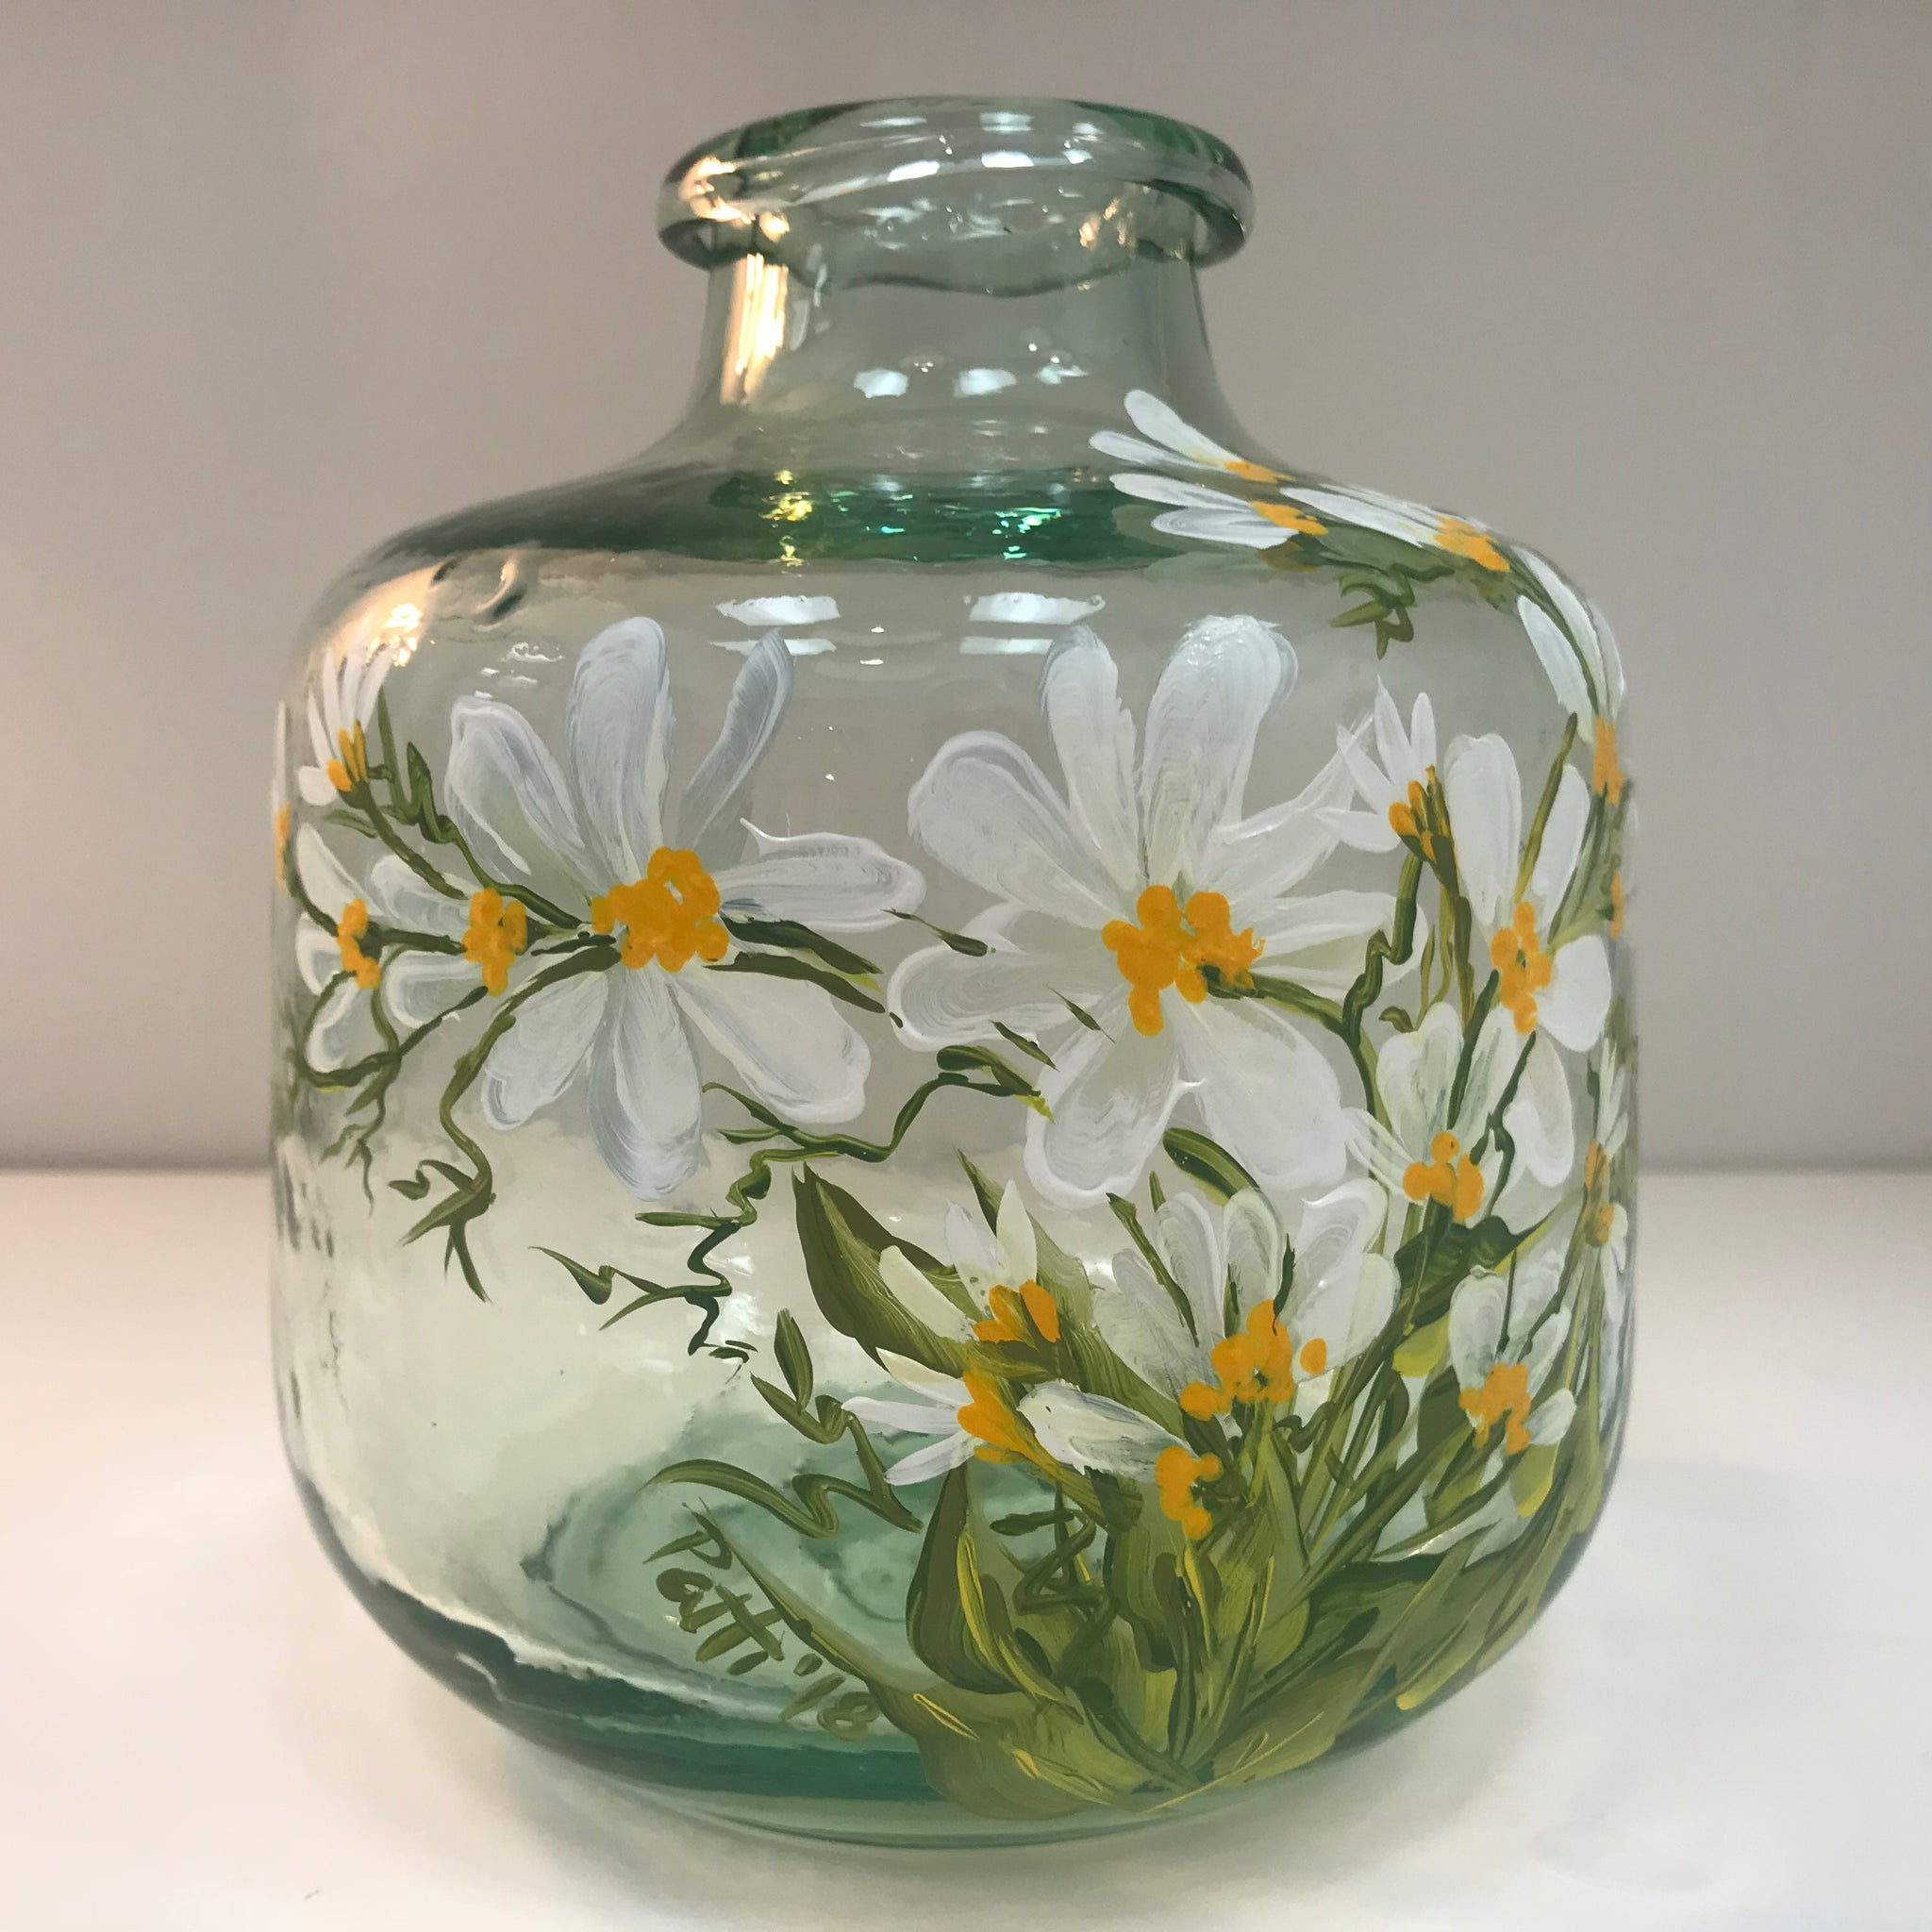 Daisy Thick Recycled Glass Vase